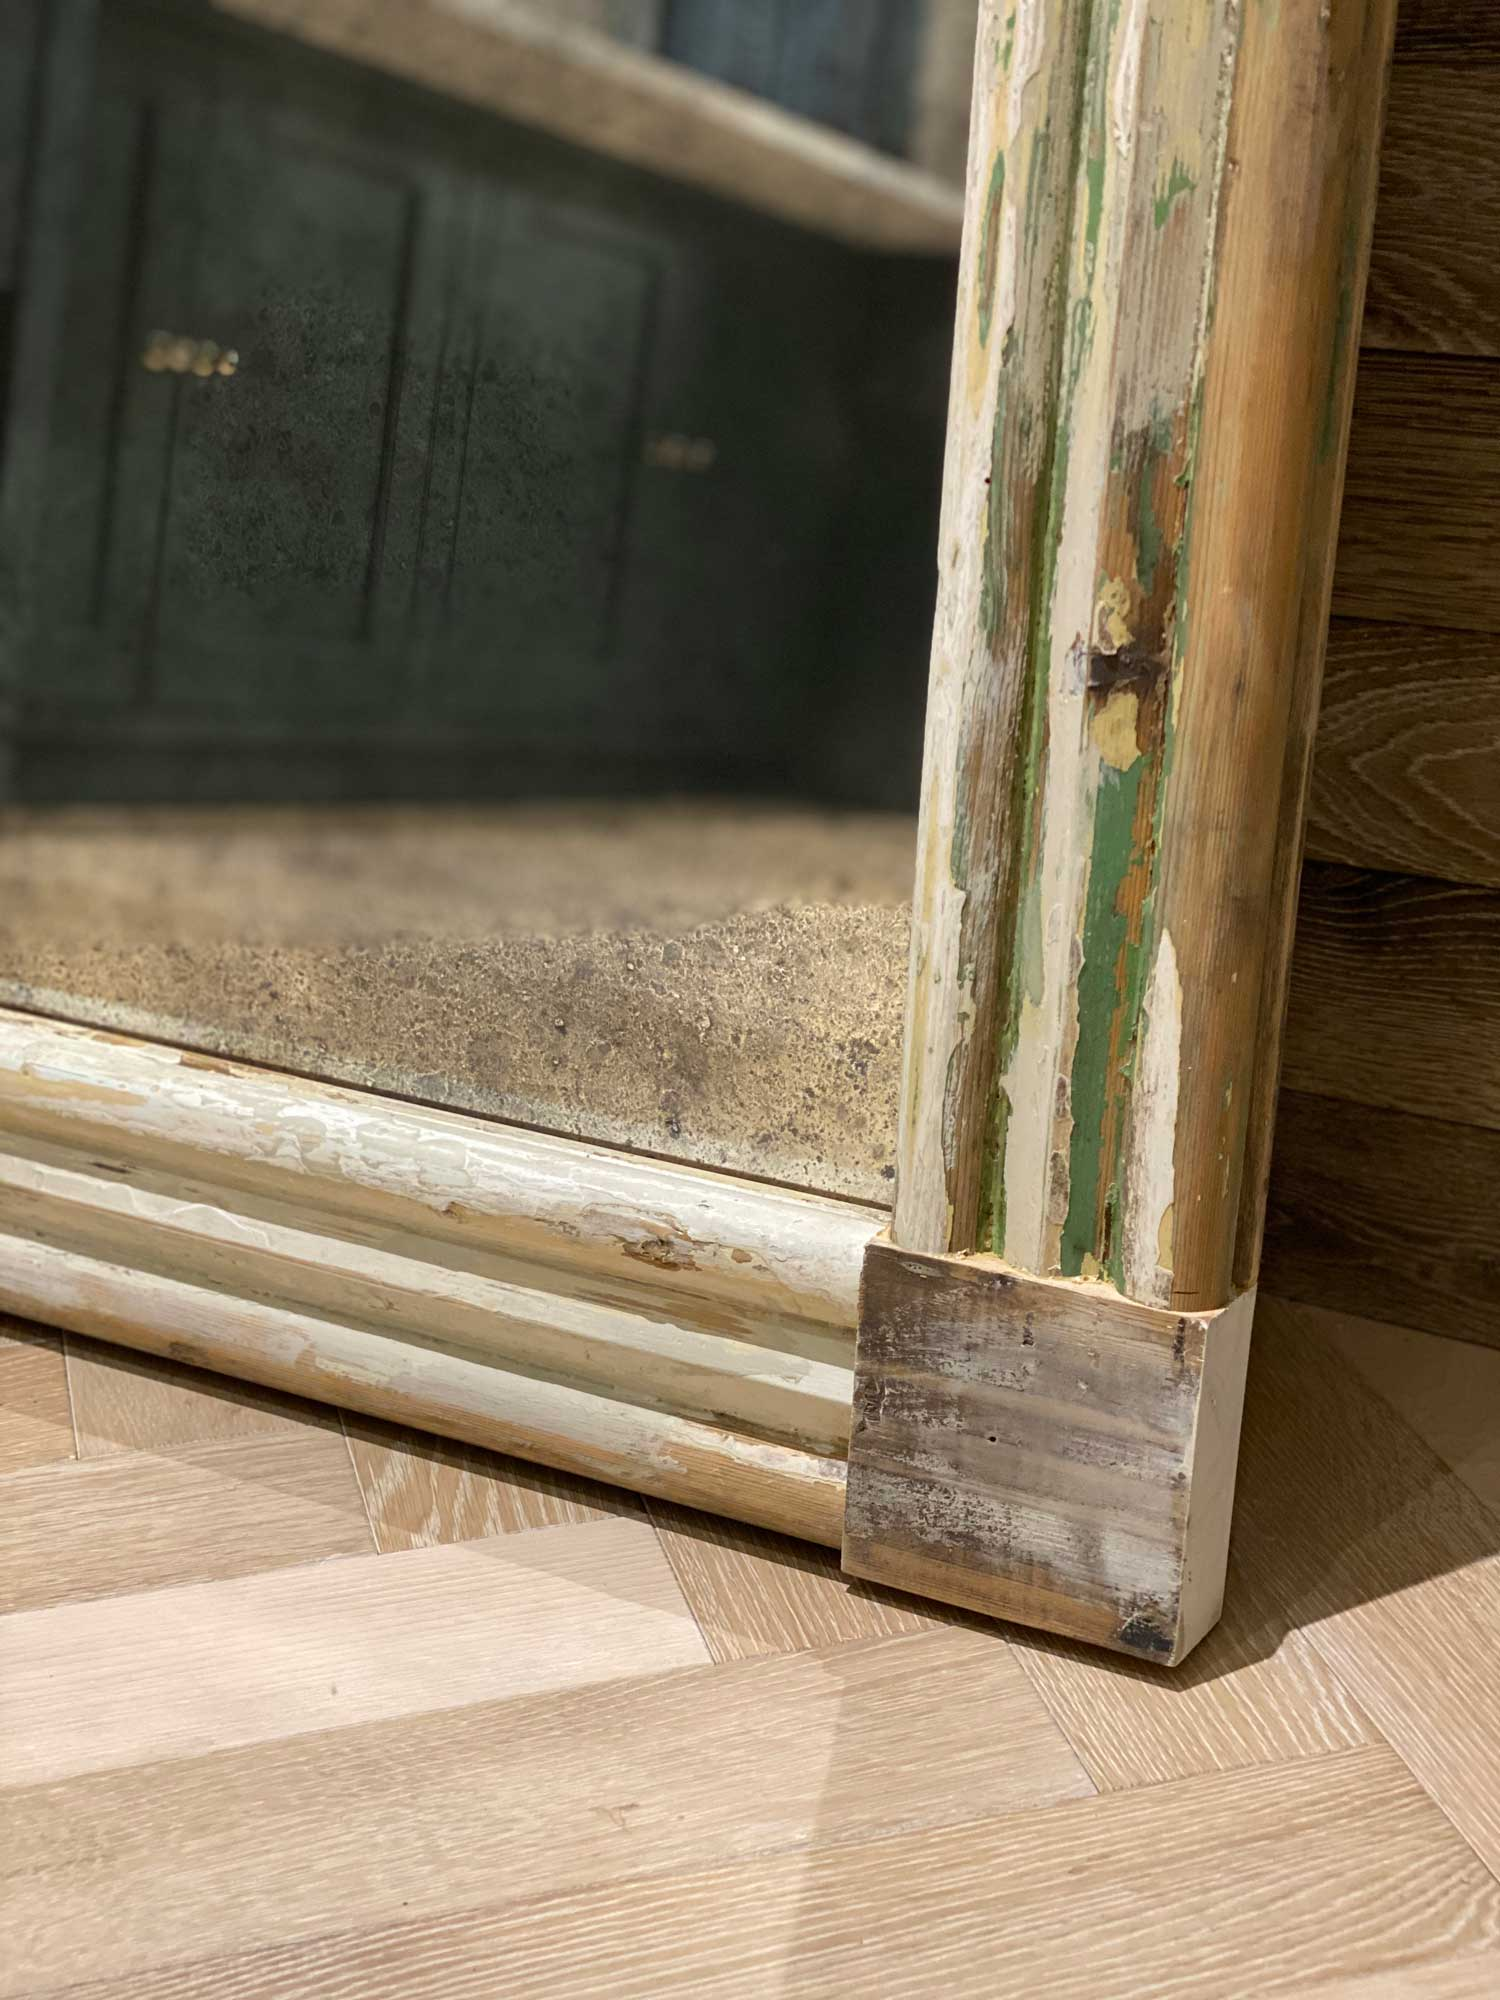 Rustic and reclaimed frame around vintage mirror